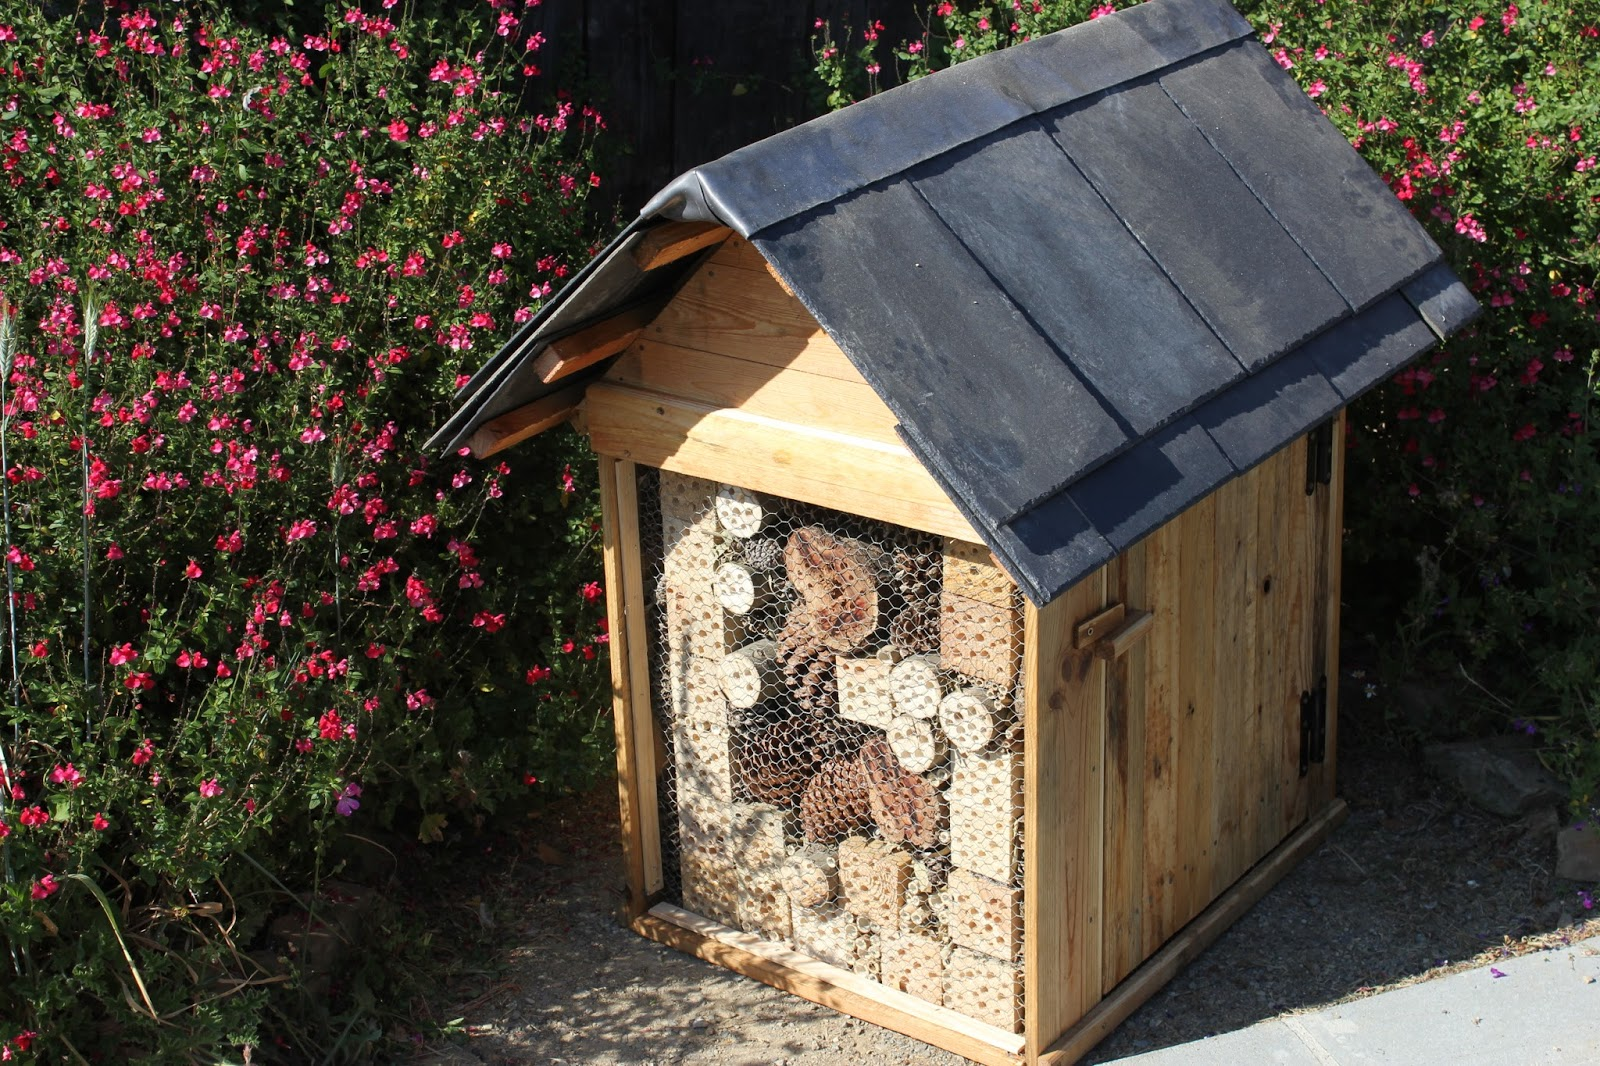 Insect hotel cover for utility box